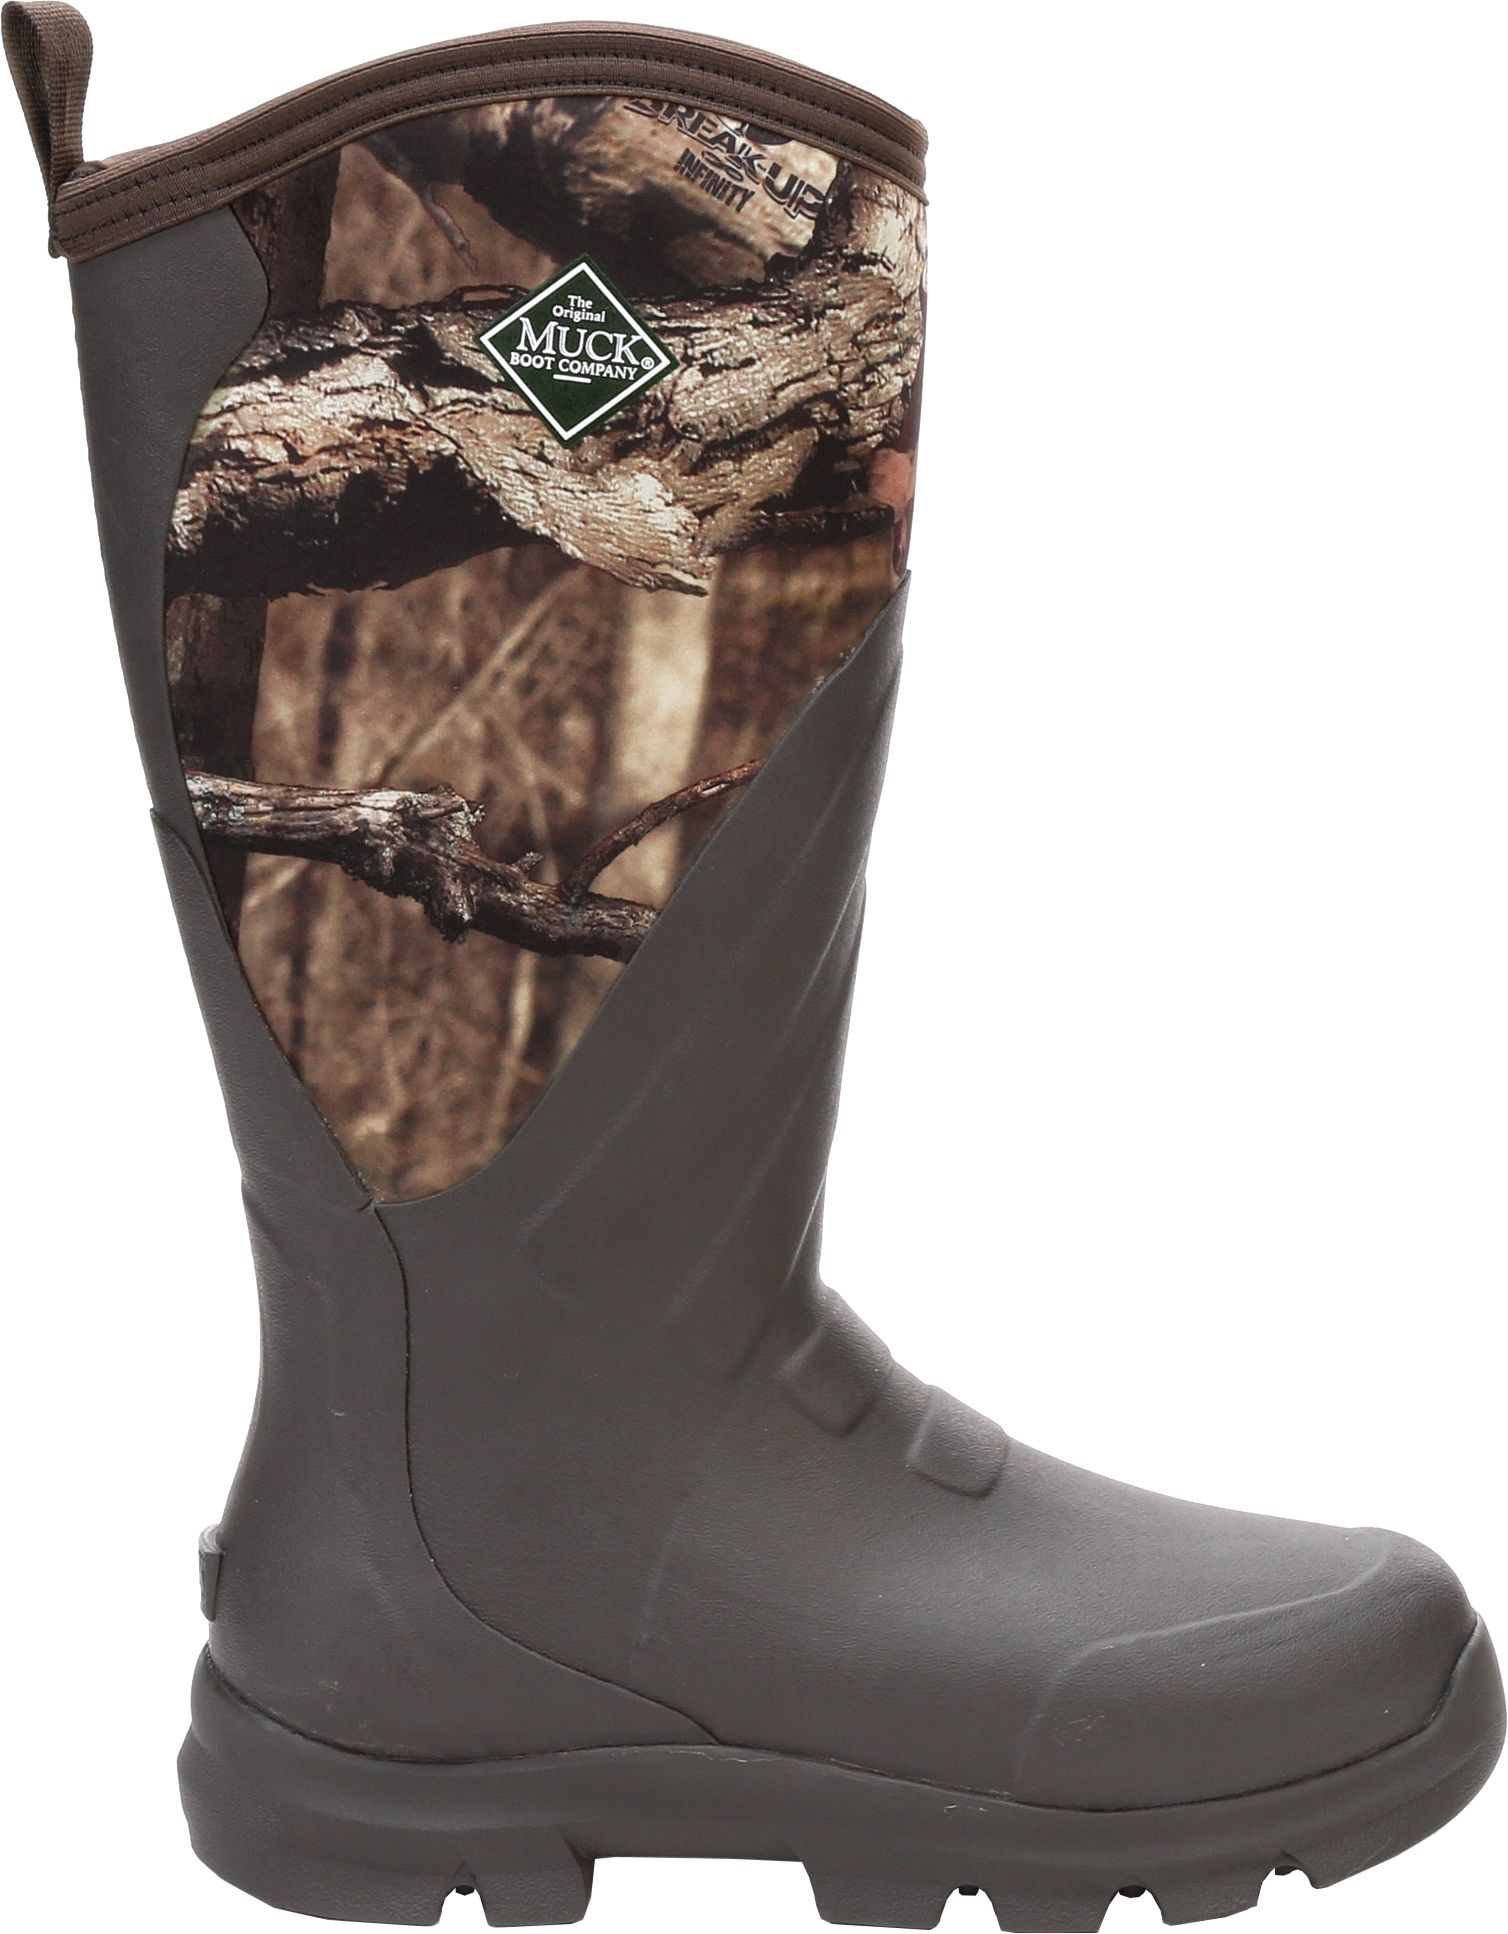 Muck Boot Men's Woody Grit Rubber Hunting Boots | DICK'S Sporting ...